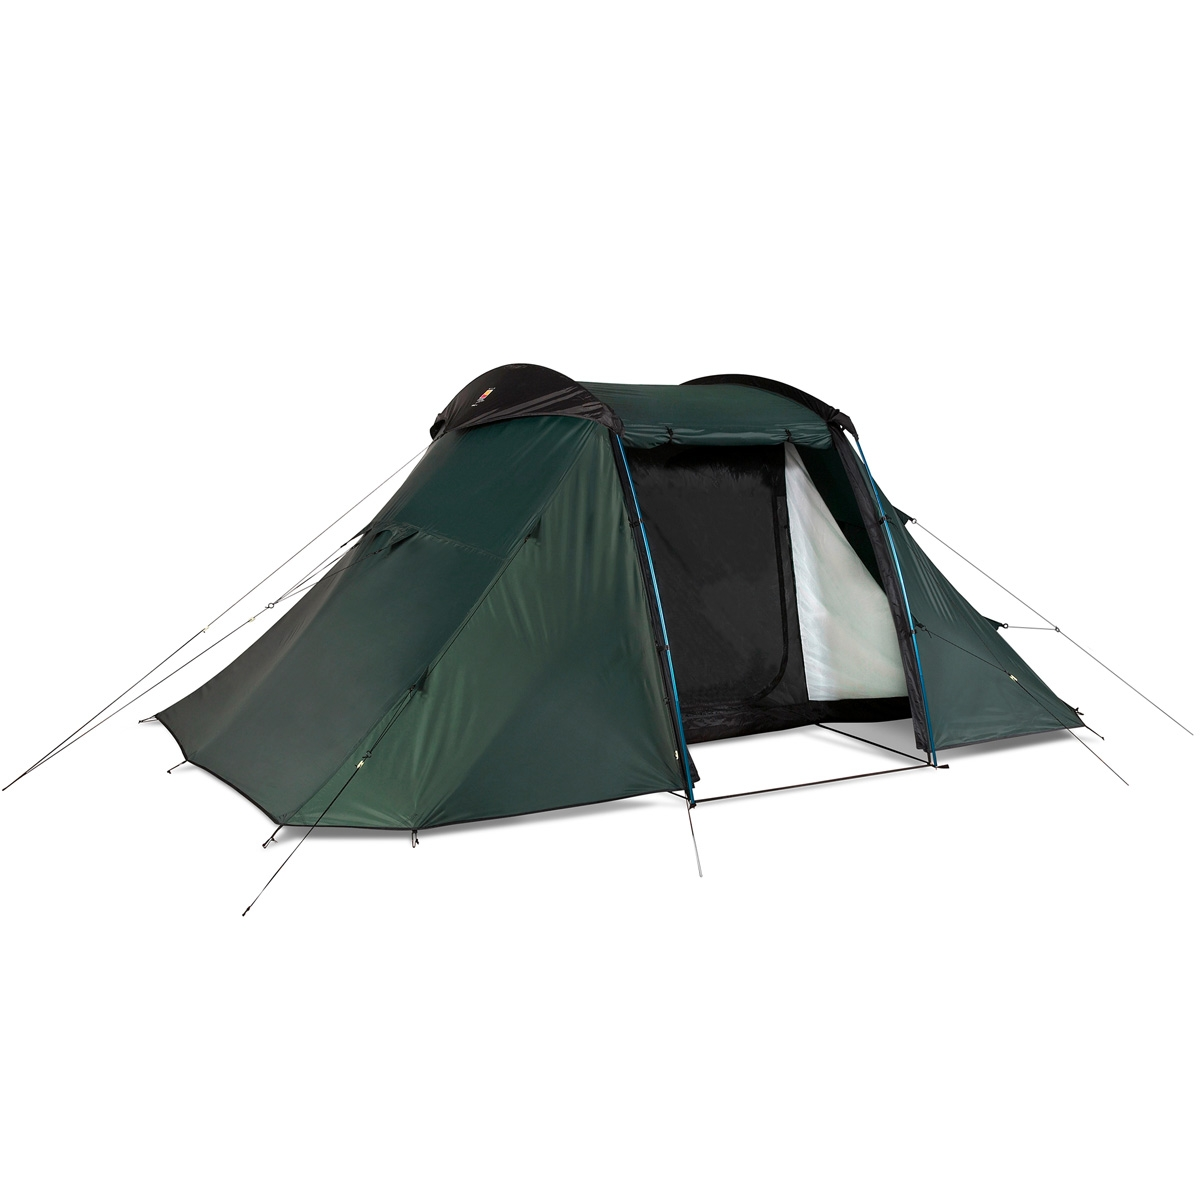 Image of Wild Country Aspect 4 Tent ...  sc 1 st  Uttings & Wild Country Aspect 4 Tent | Uttings.co.uk